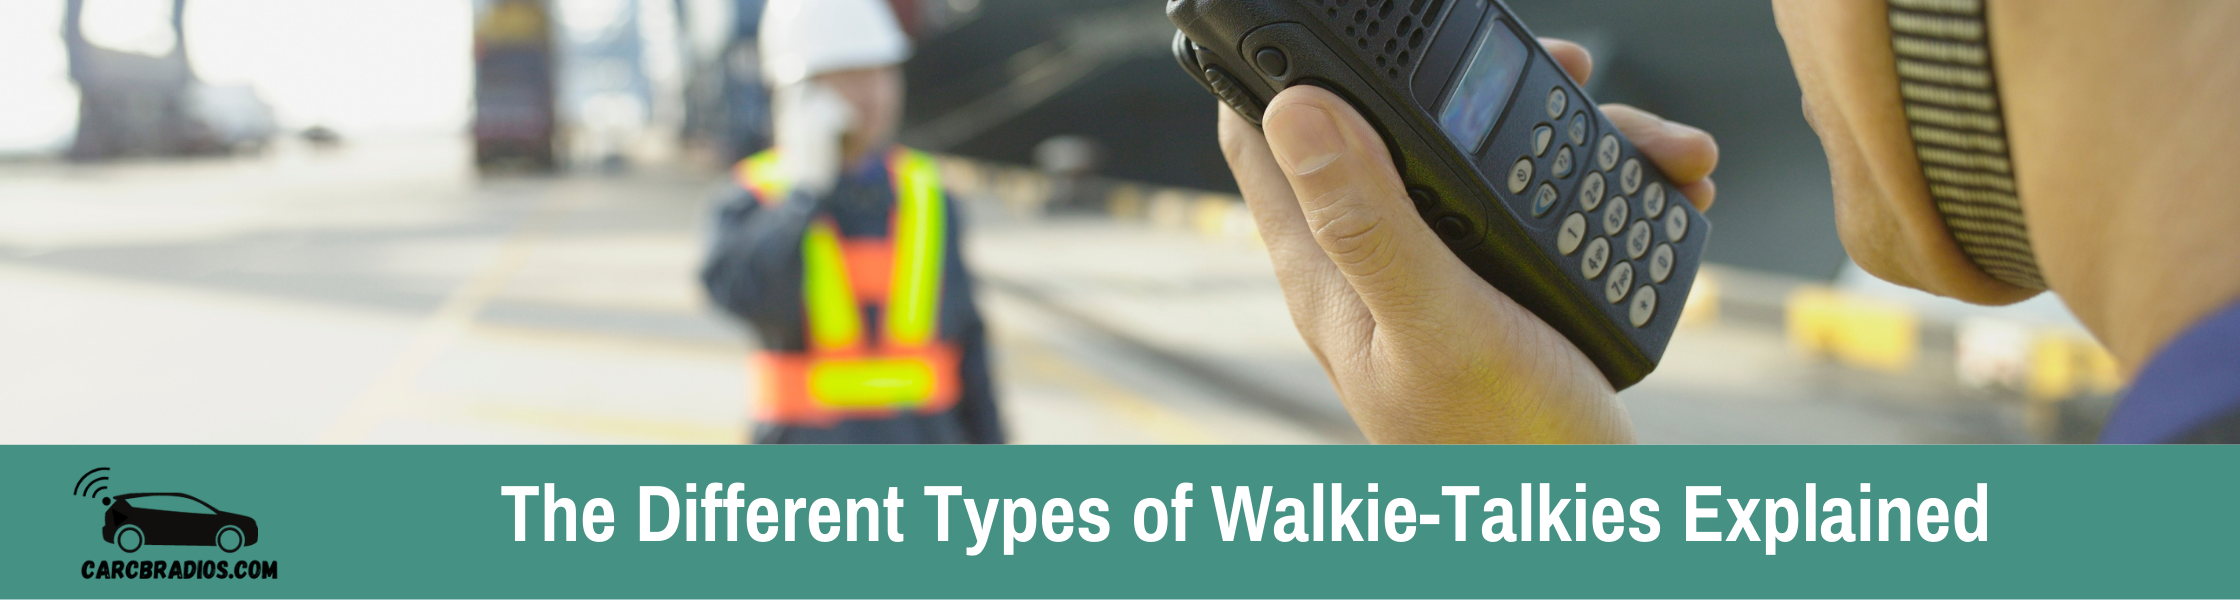 The Different Types of Walkie-Talkies Explained: The two most common types of walkie-talkies are Family Radio Service (FRS), and General Mobile Radio Service..